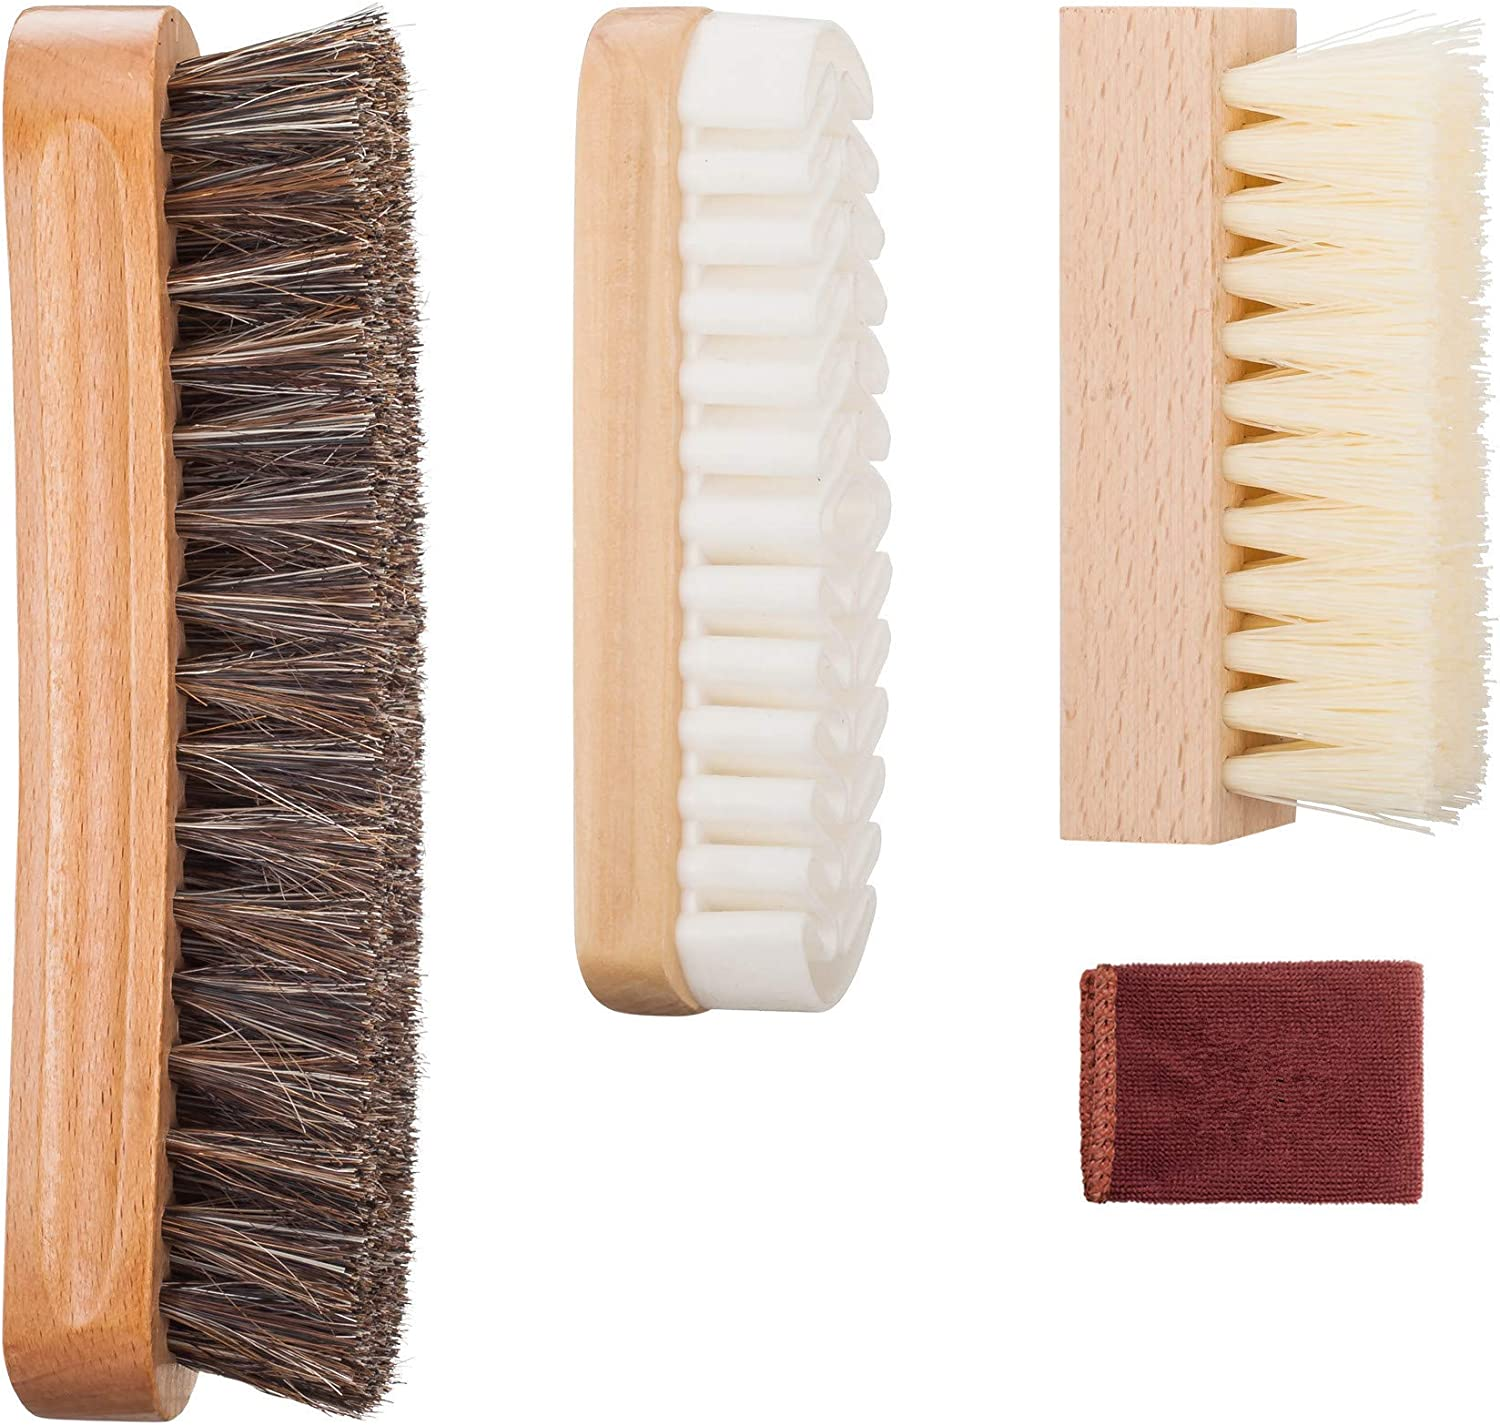 Shoe Brush Kit with 100% Horsehair Bristles Shoe Brush, Shoe Cleaning Brush, Crepe, Suede Nubuck Brush for Leather, Bags, cloth clean - 3 PACK